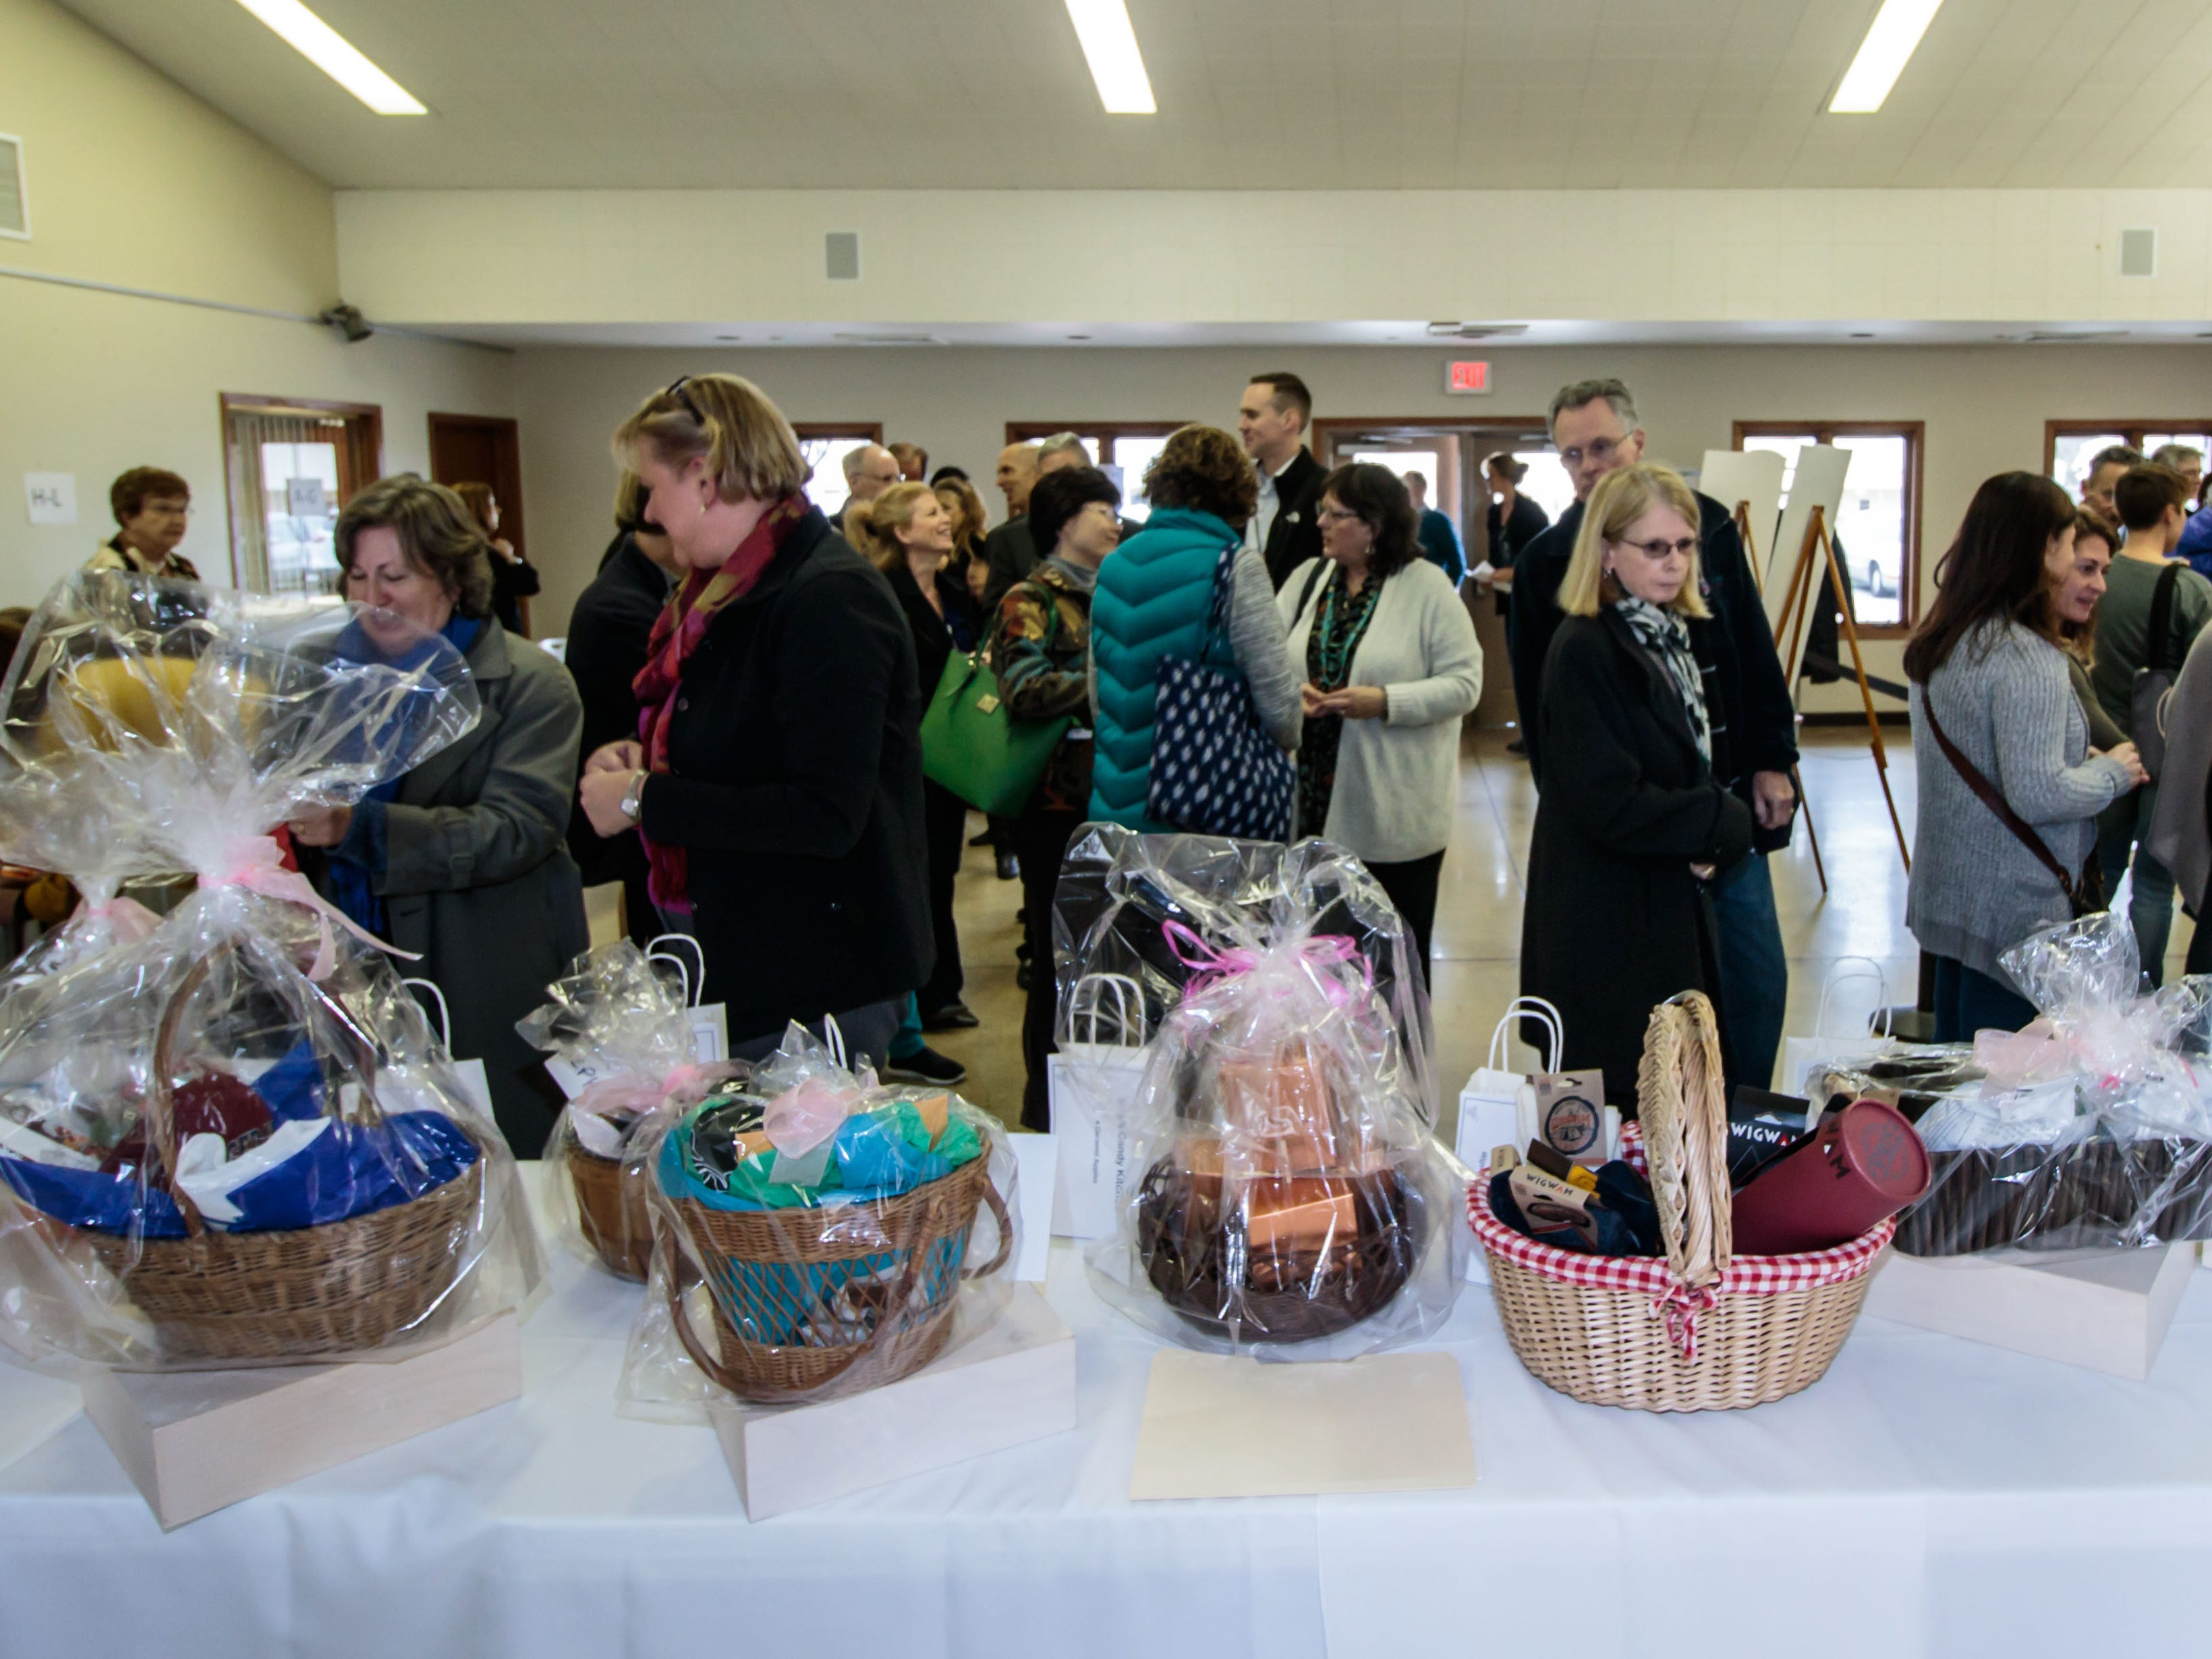 Attendees look over a variety of raffle items during the Empty Bowls fundraising event at the Ozaukee Pavilion in Cedarburg on Thursday, Nov. 1, 2018. Proceeds from the event will benefit Family Sharing's food pantry and provide 600 Ozaukee County families with Thanksgiving dinners.